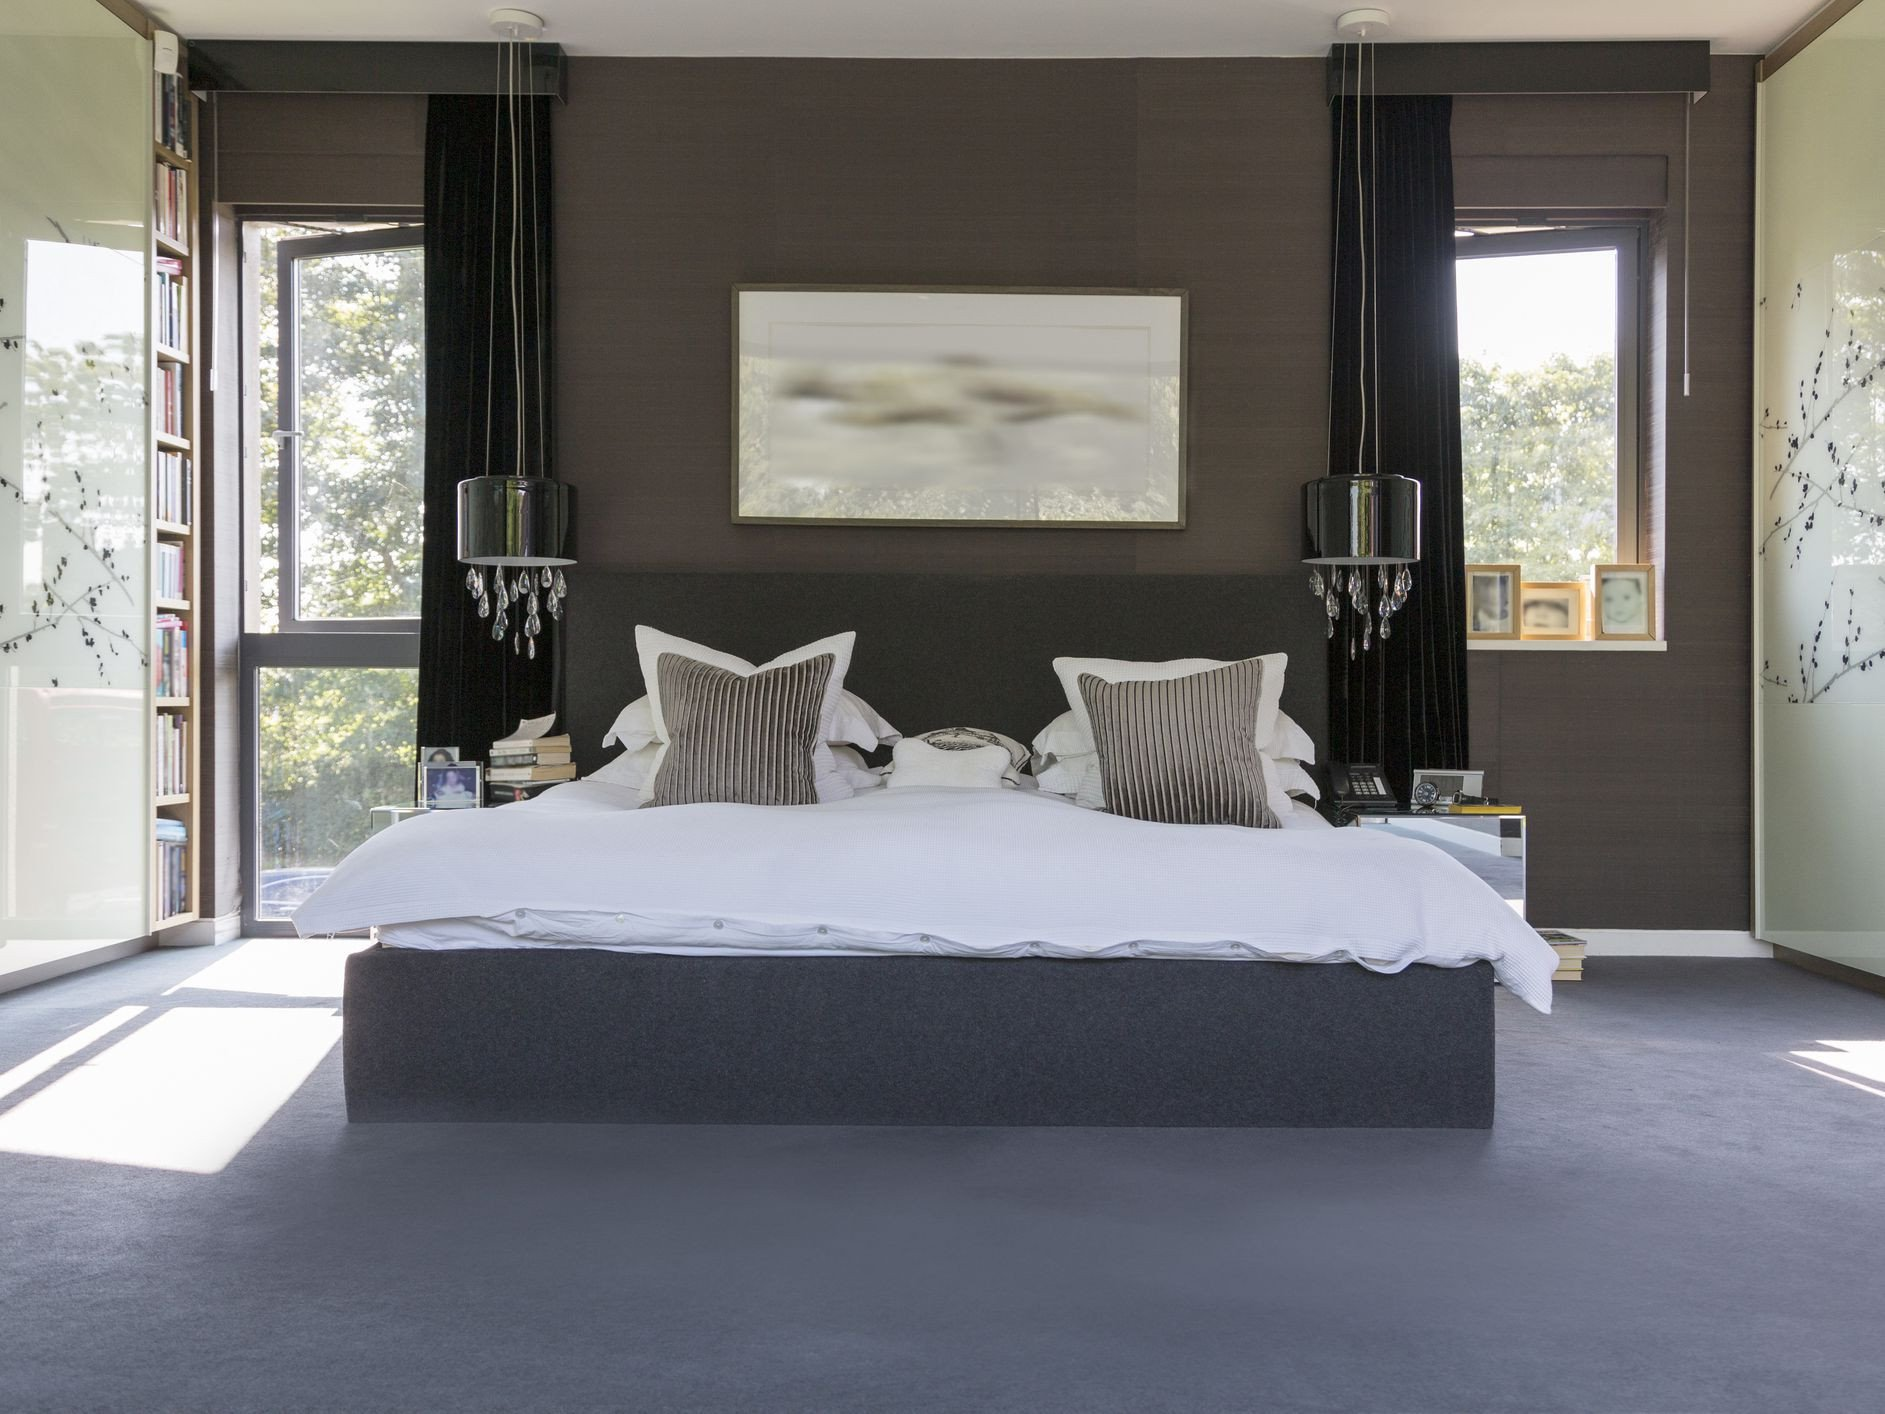 Mens Bedroom Decorating Ideas Inspirational Creating A Romantic Bedroom with Color